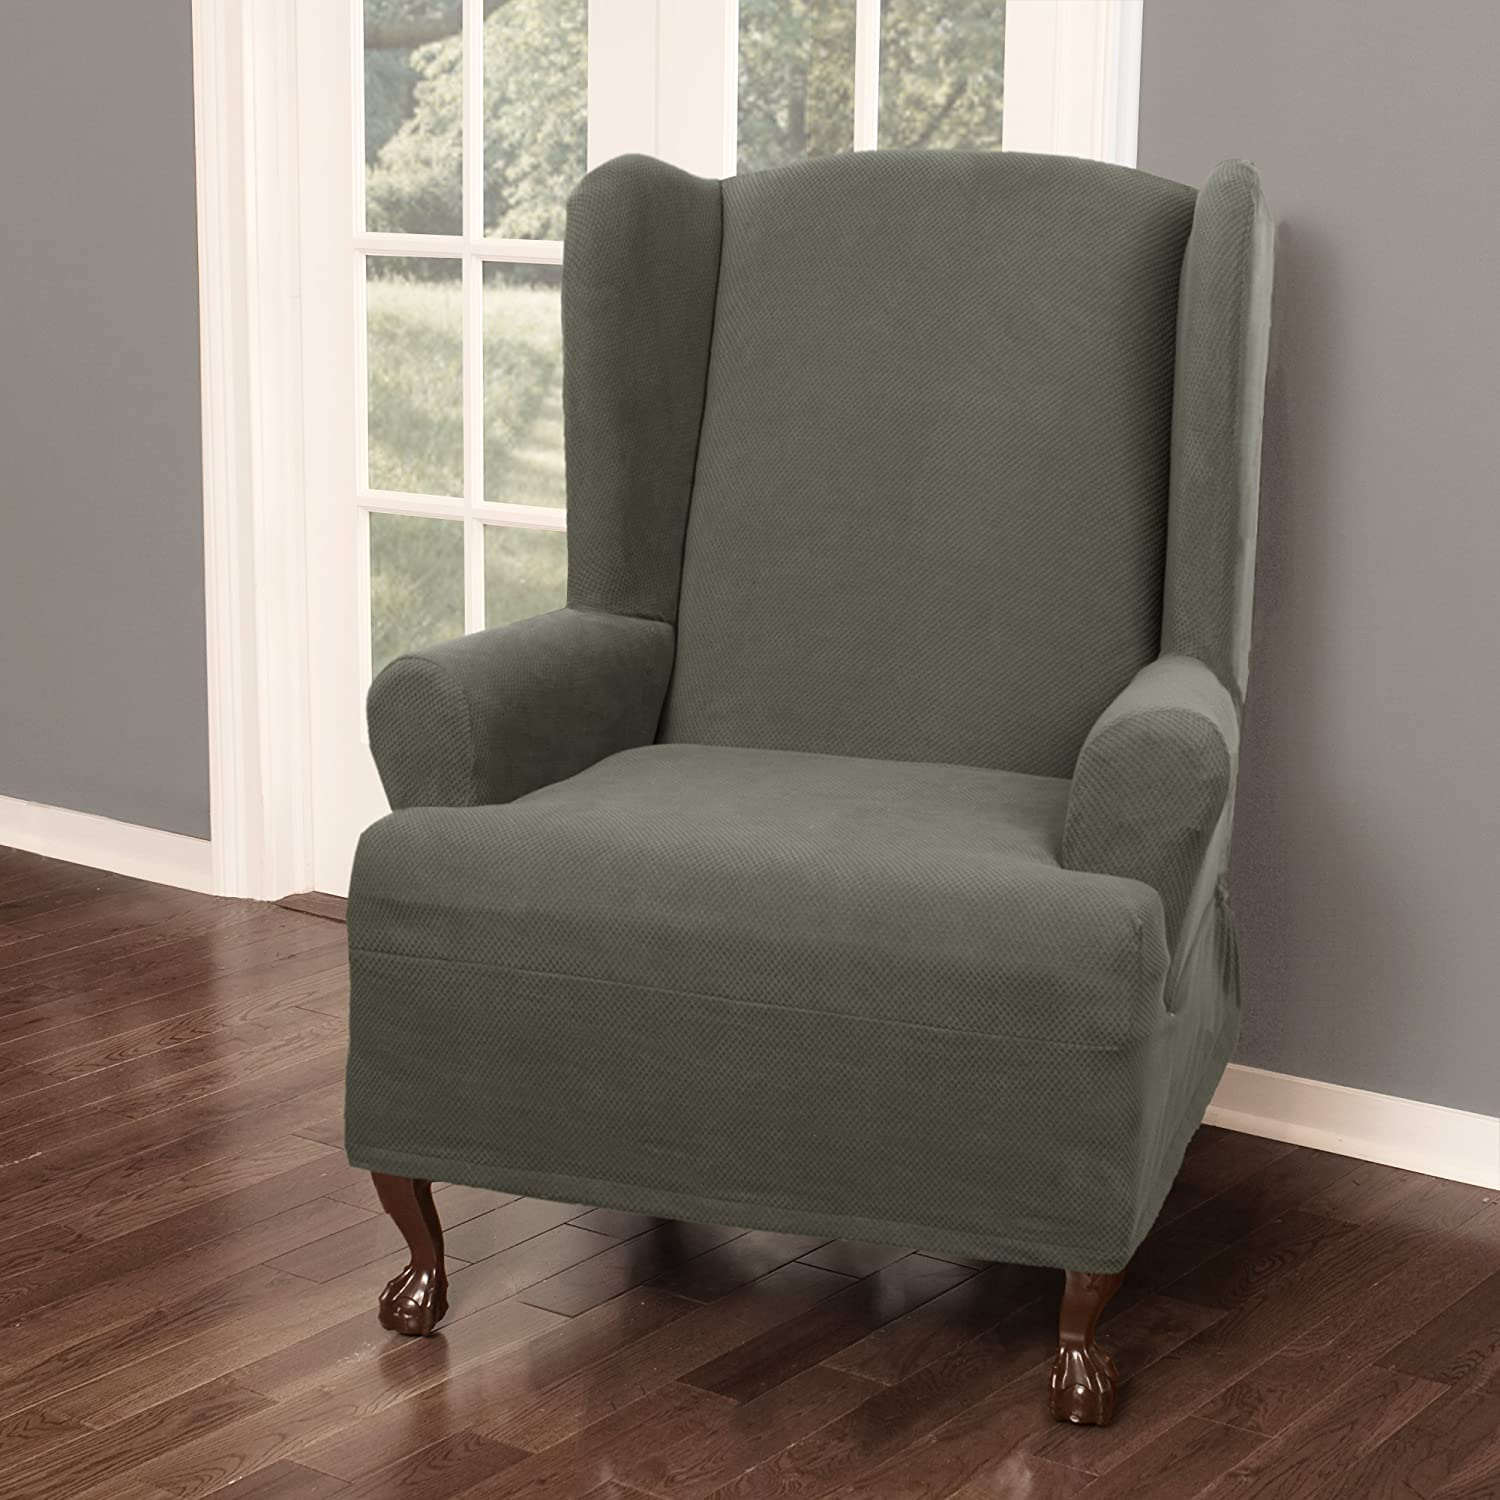 Maytex Pixel Ultra Soft Stretch Wing Back Arm Chair Furniture Cover Slipcover Dusty Olive